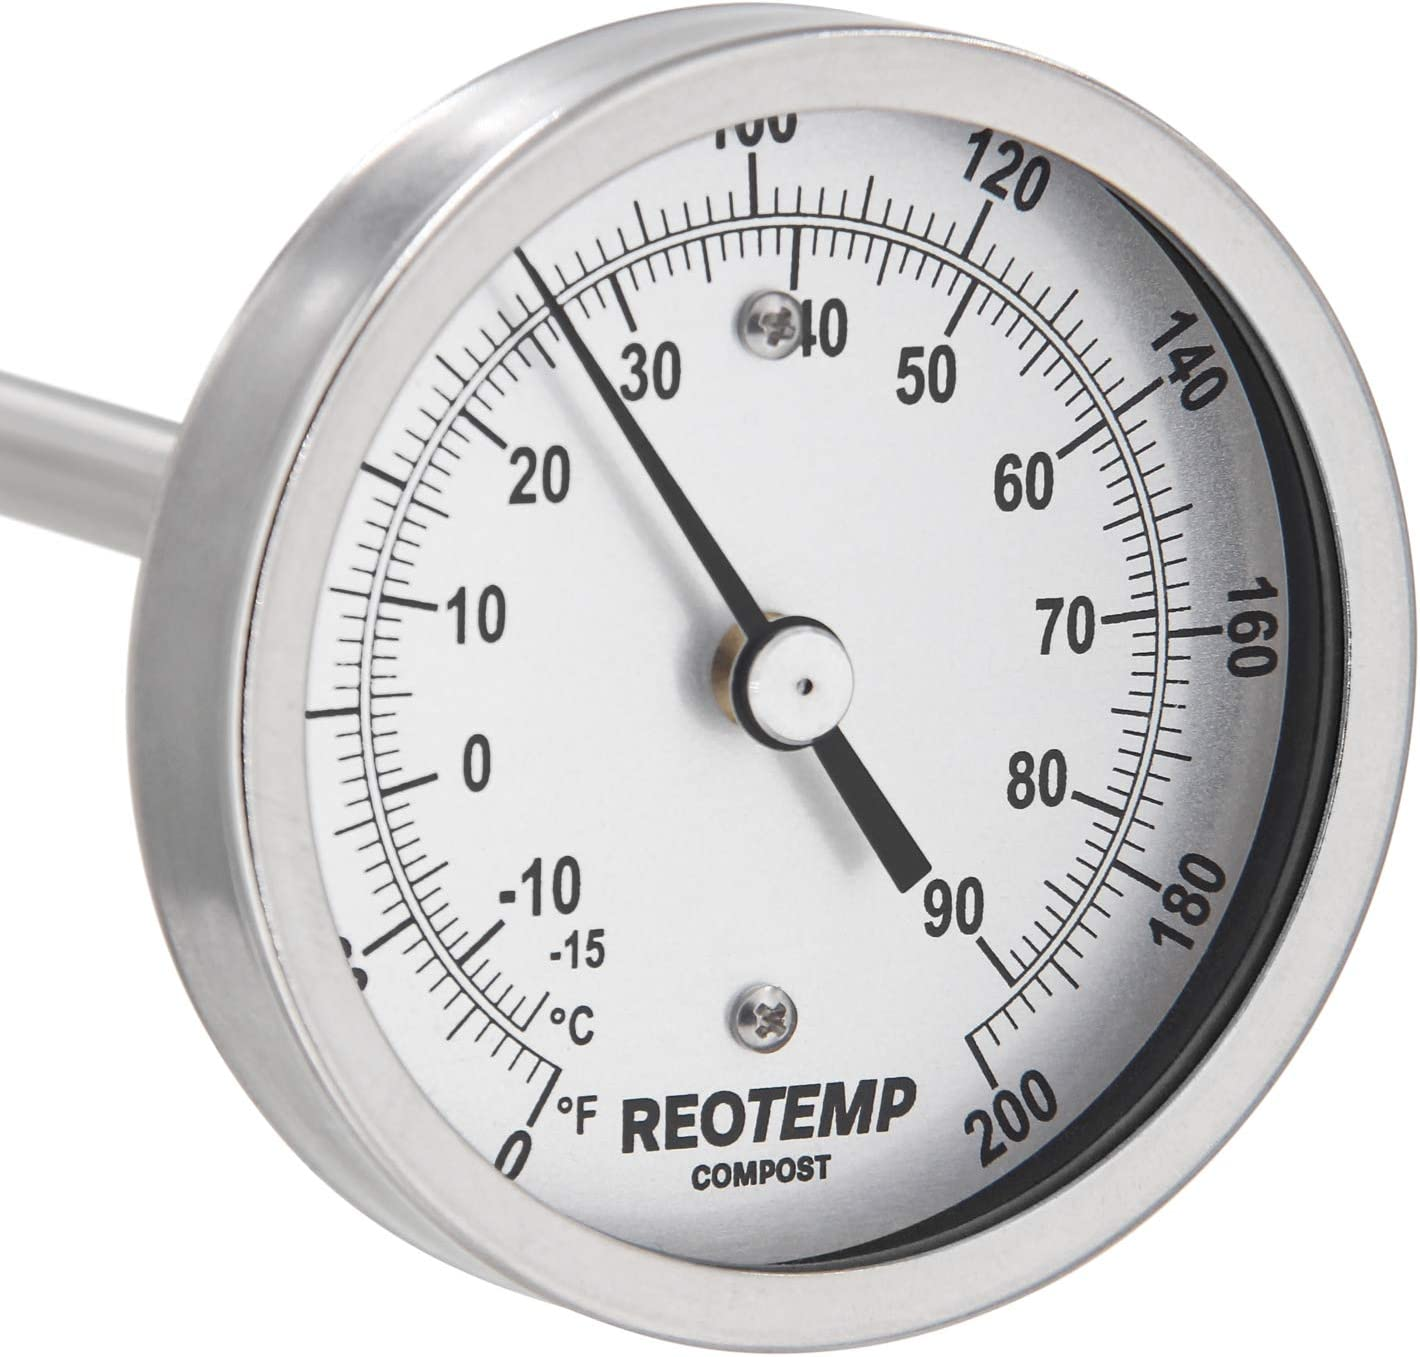 REOTEMP Heavy Duty Compost Thermometer